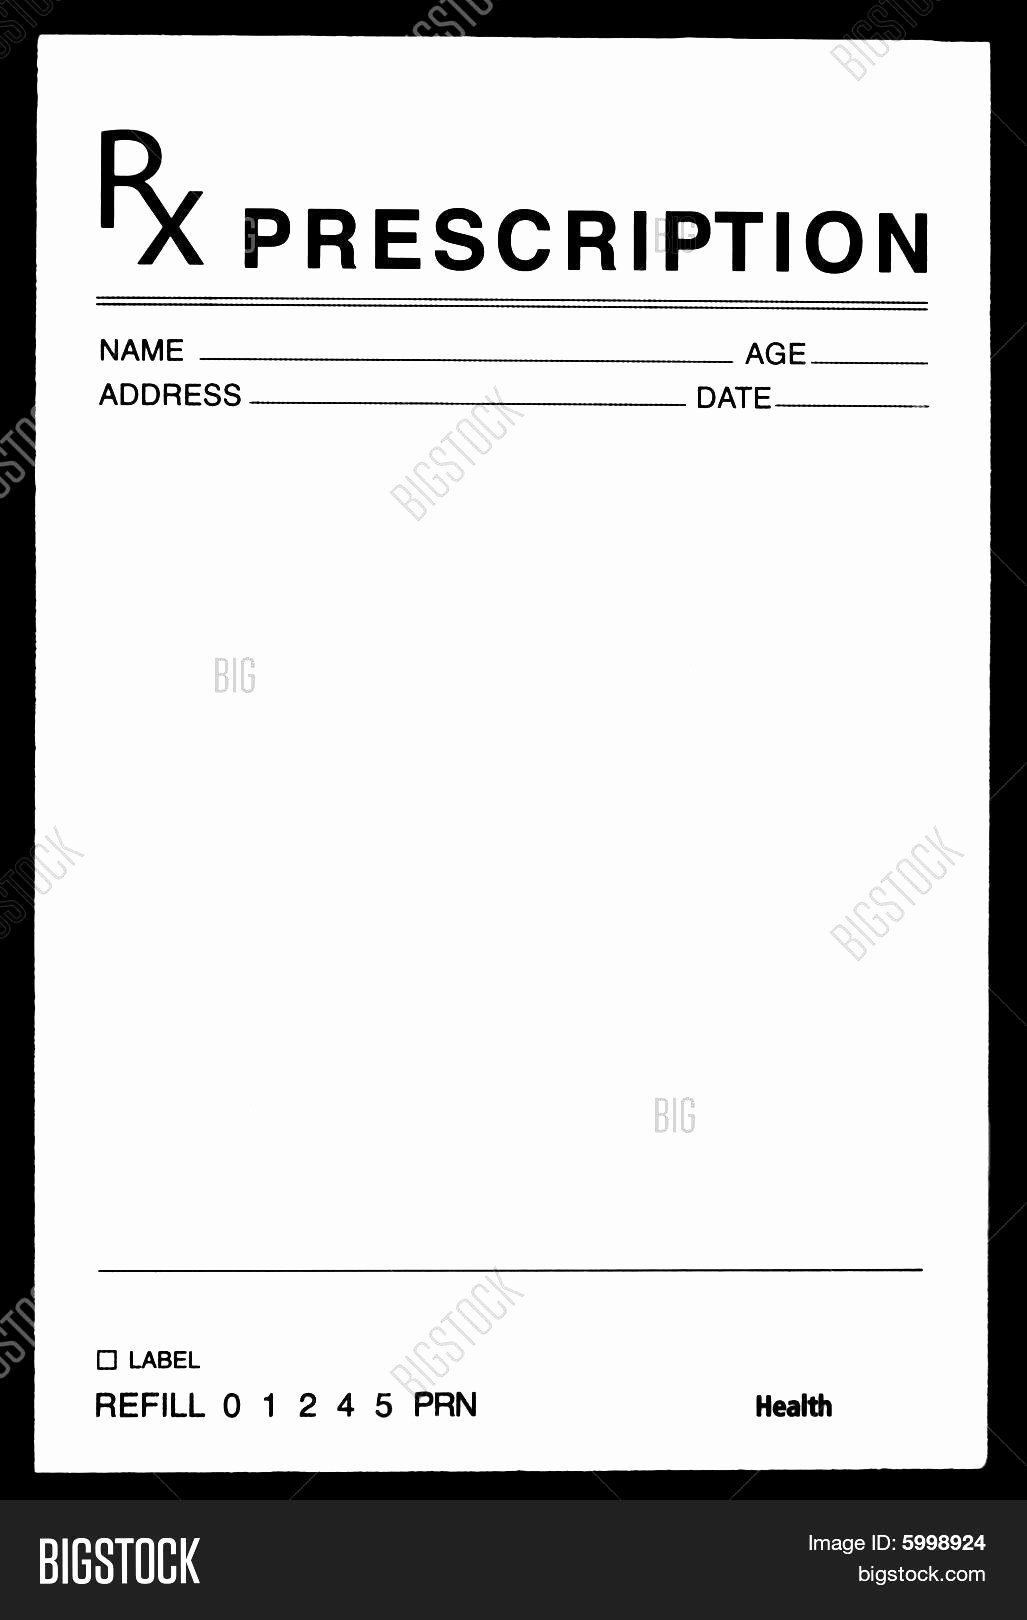 Prescription Template Microsoft Word Best Of Fake Prescription Template Filename